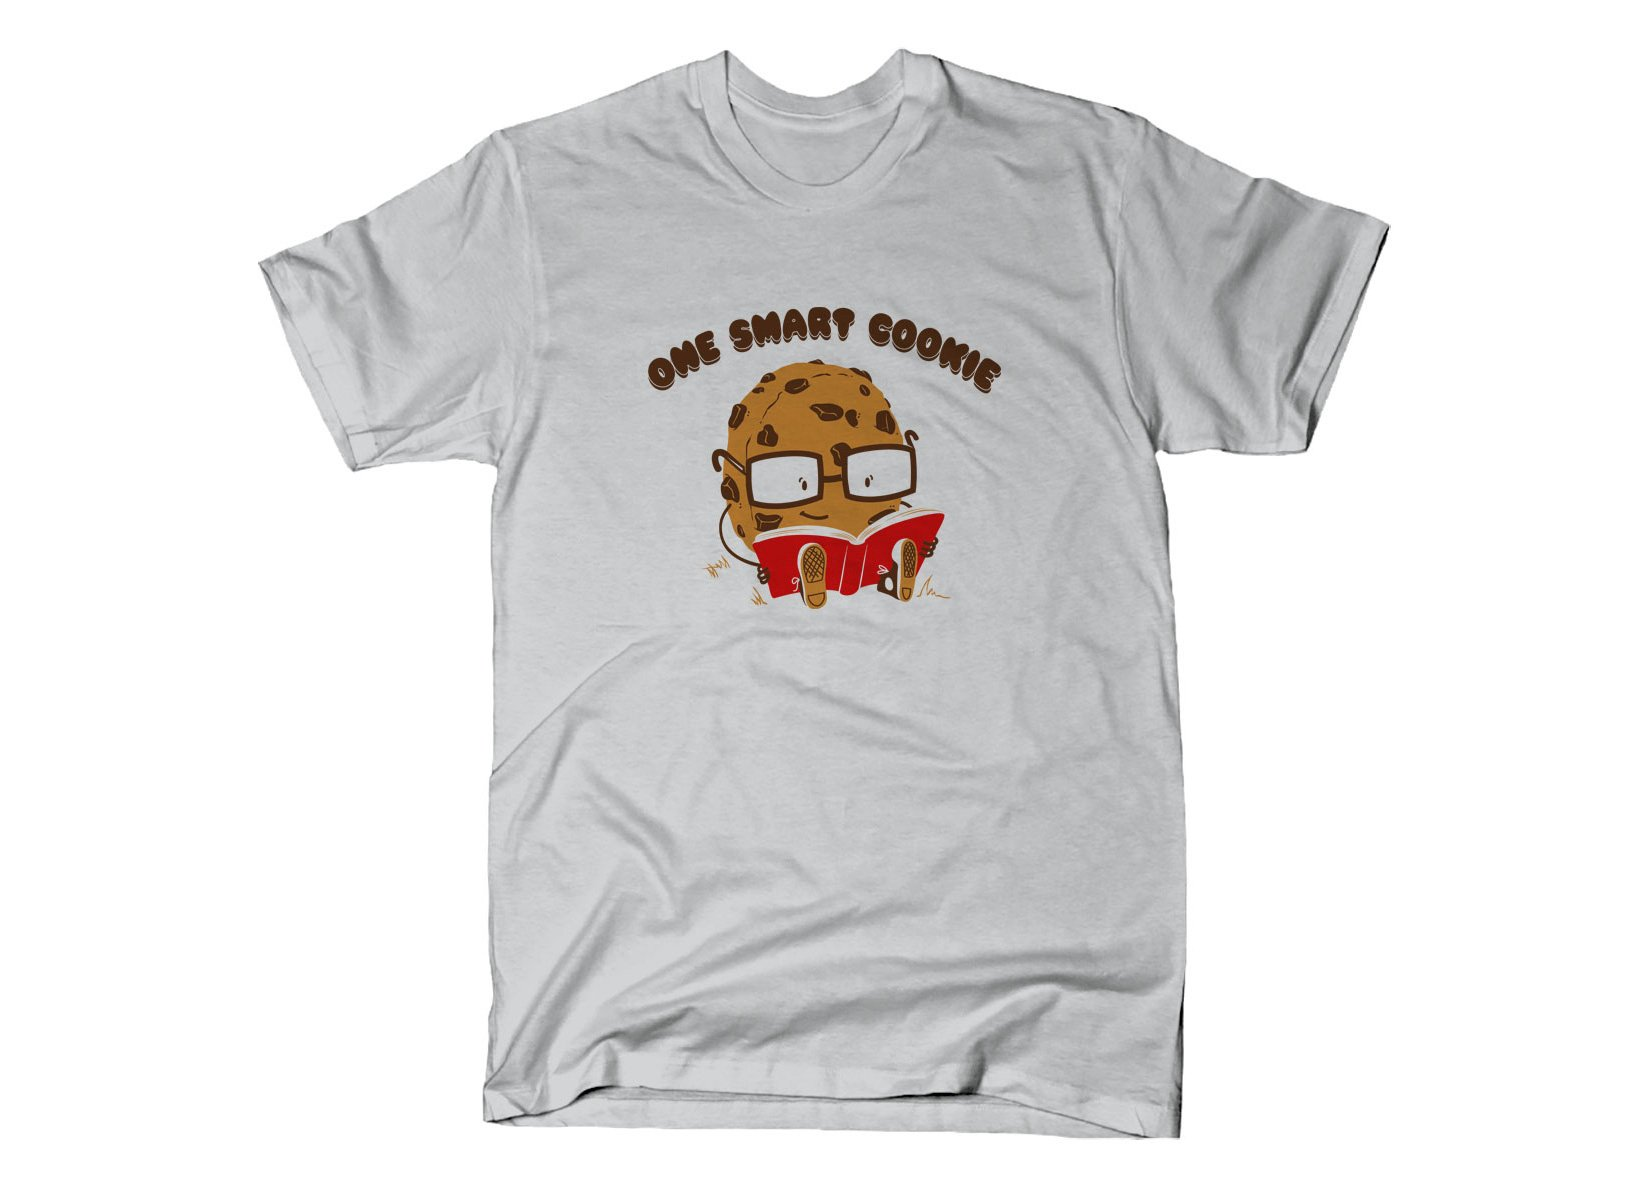 One Smart Cookie on Mens T-Shirt